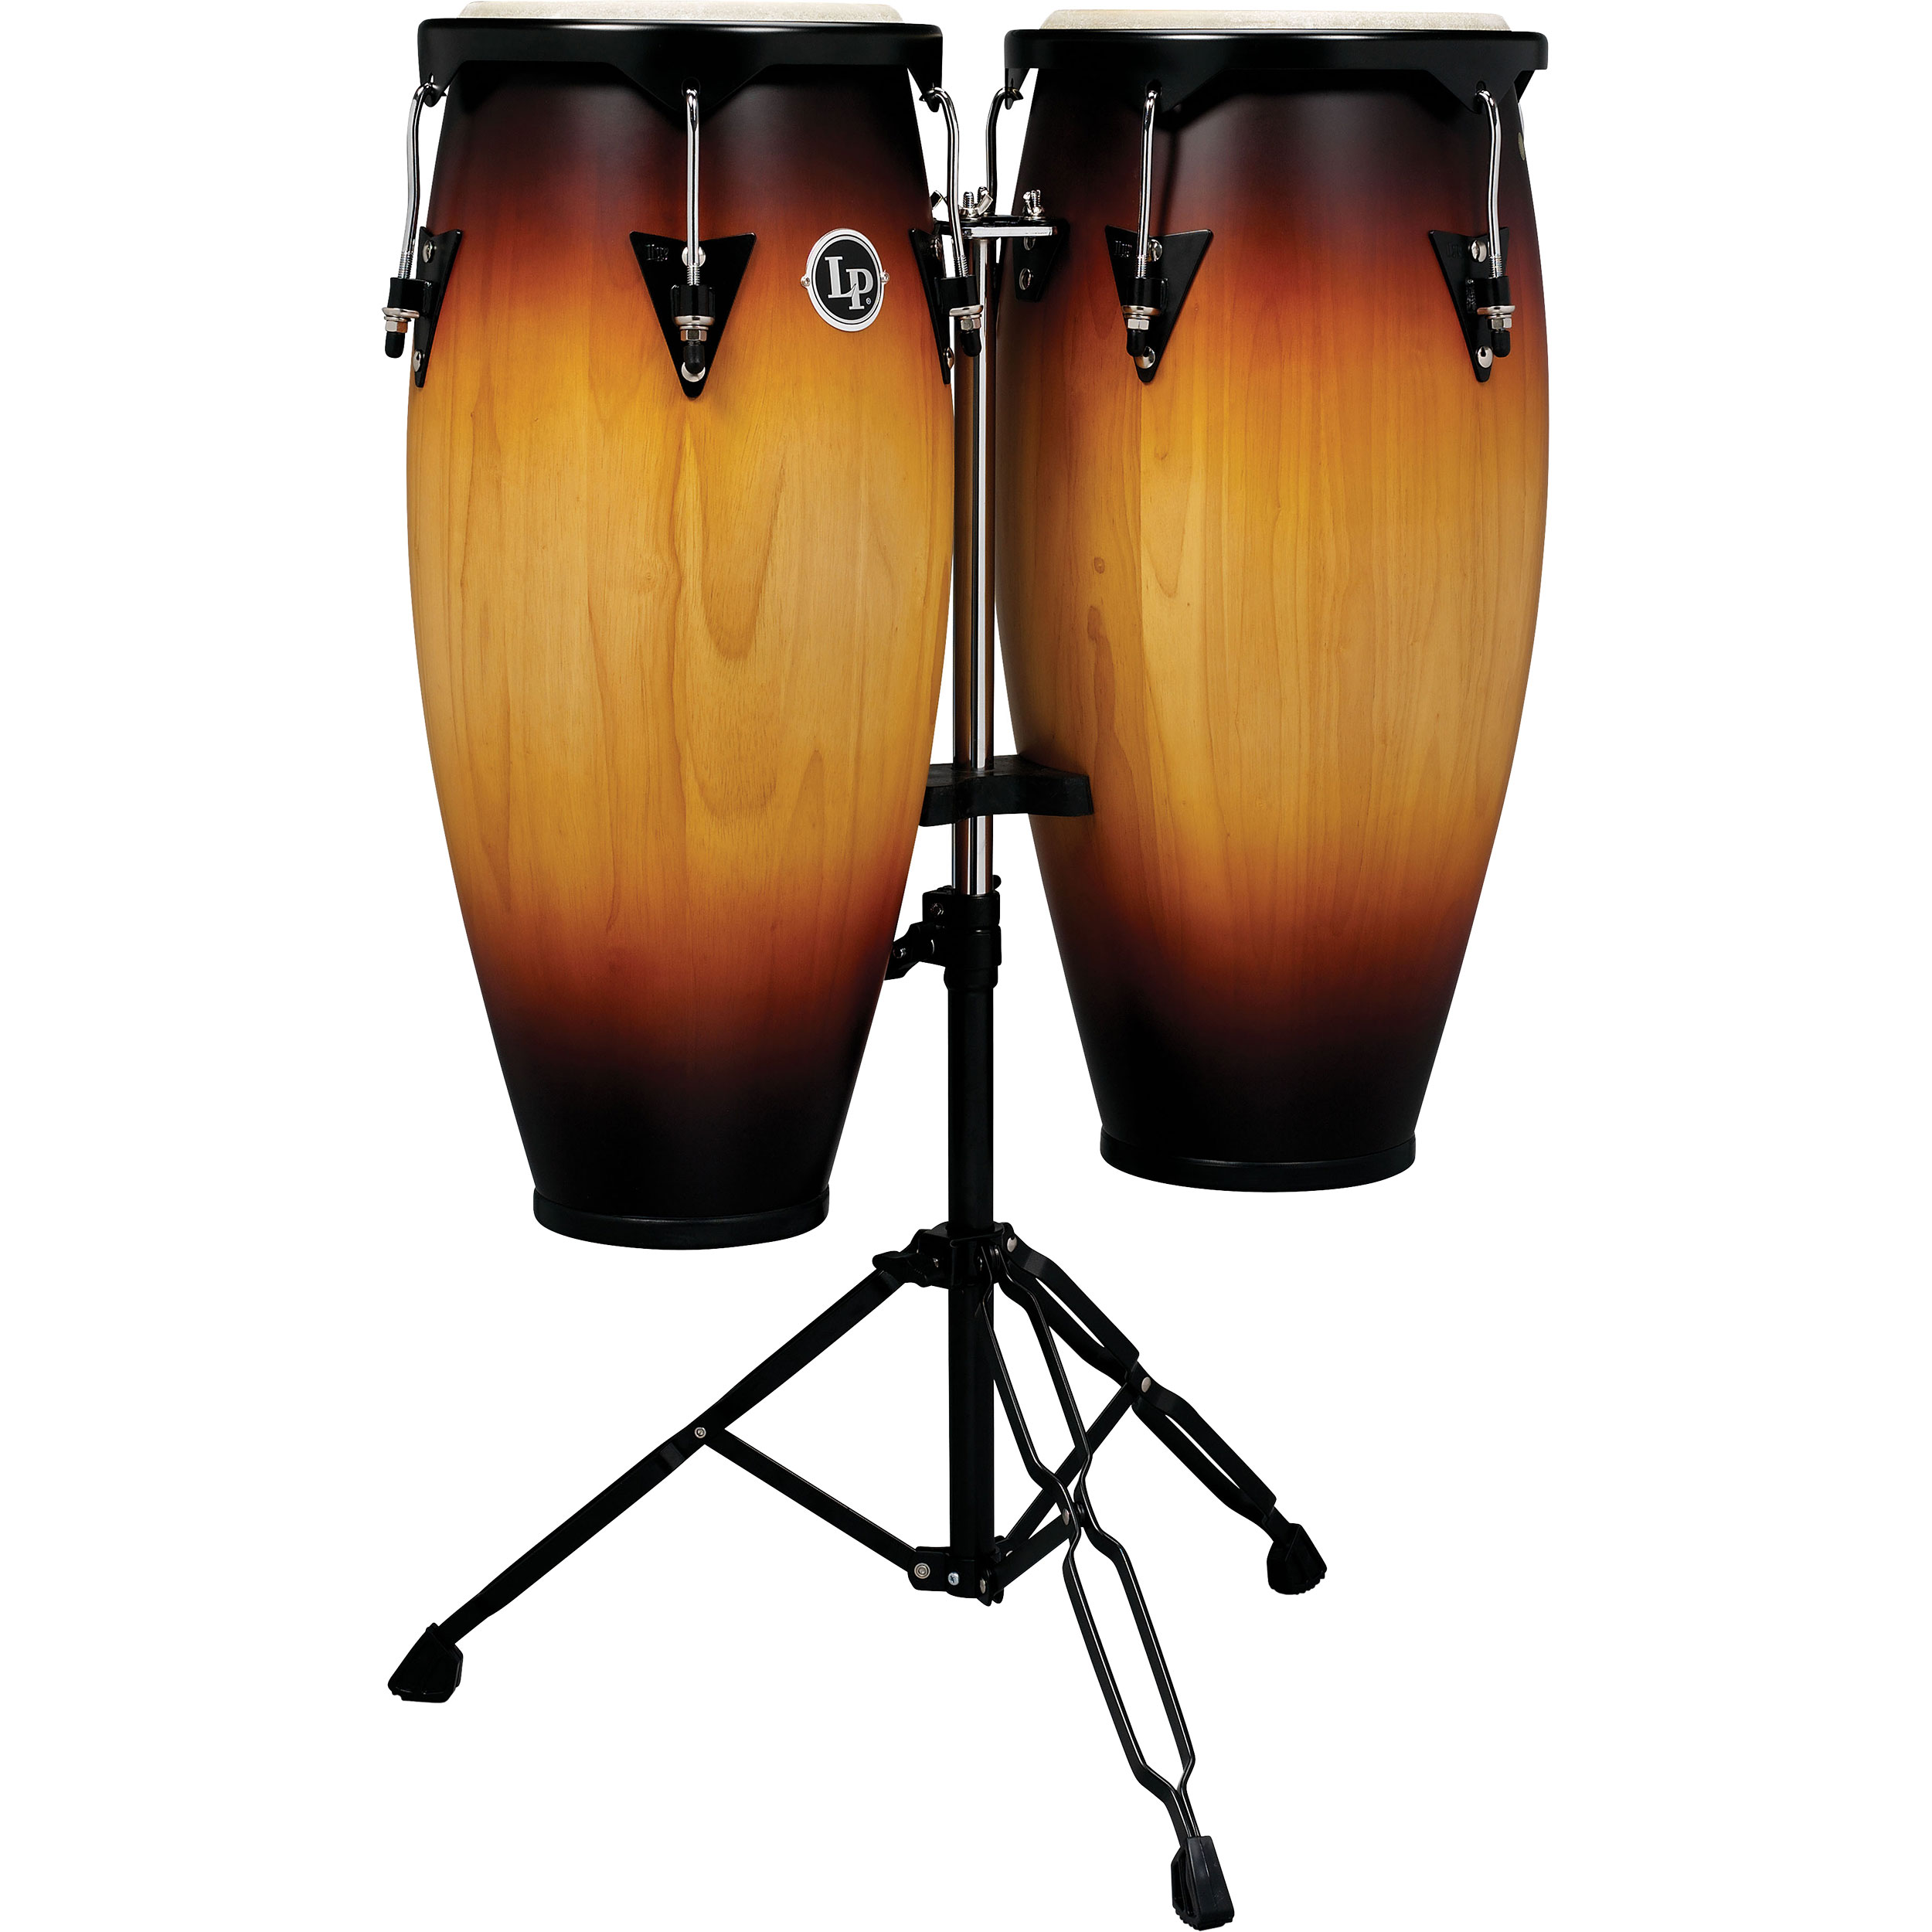 "LP 10"" & 11"" City Series Conga Set with Double Conga Stand in Vintage Sunburst"